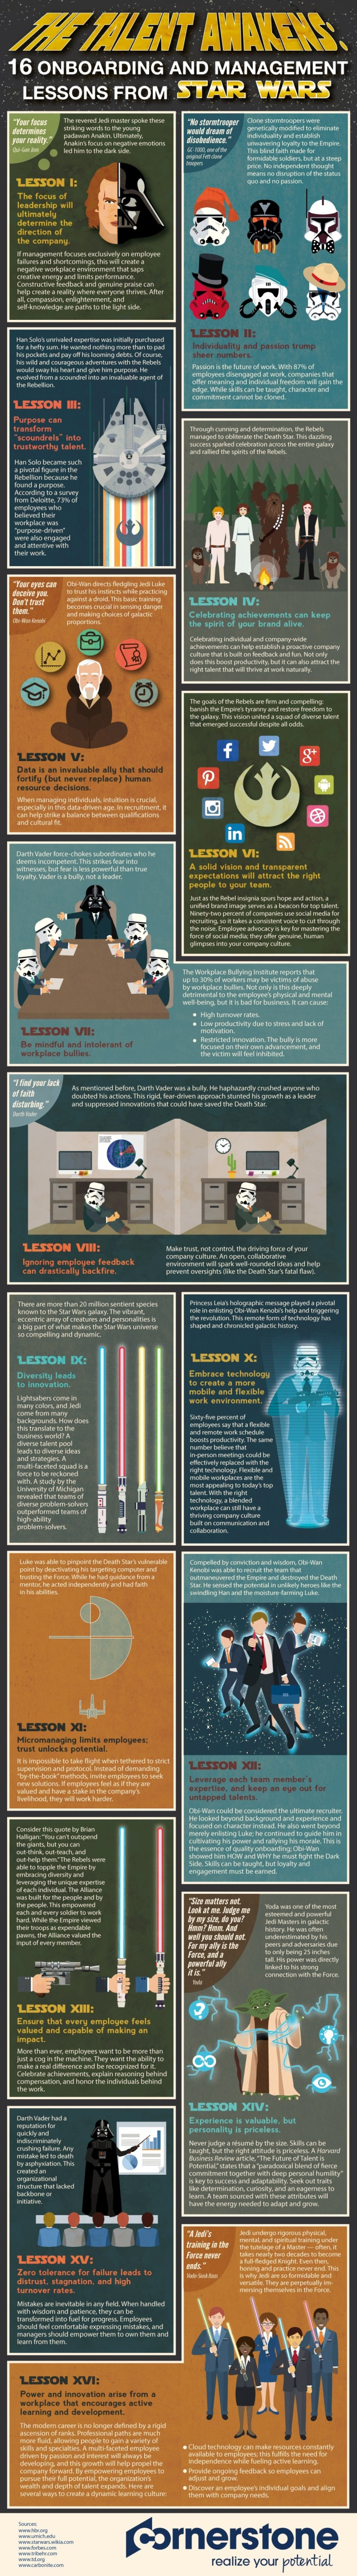 the-talent-awakens-16-onboarding-and-management-lessons-from-star-wars_567098f2a9a55_w1500.jpg